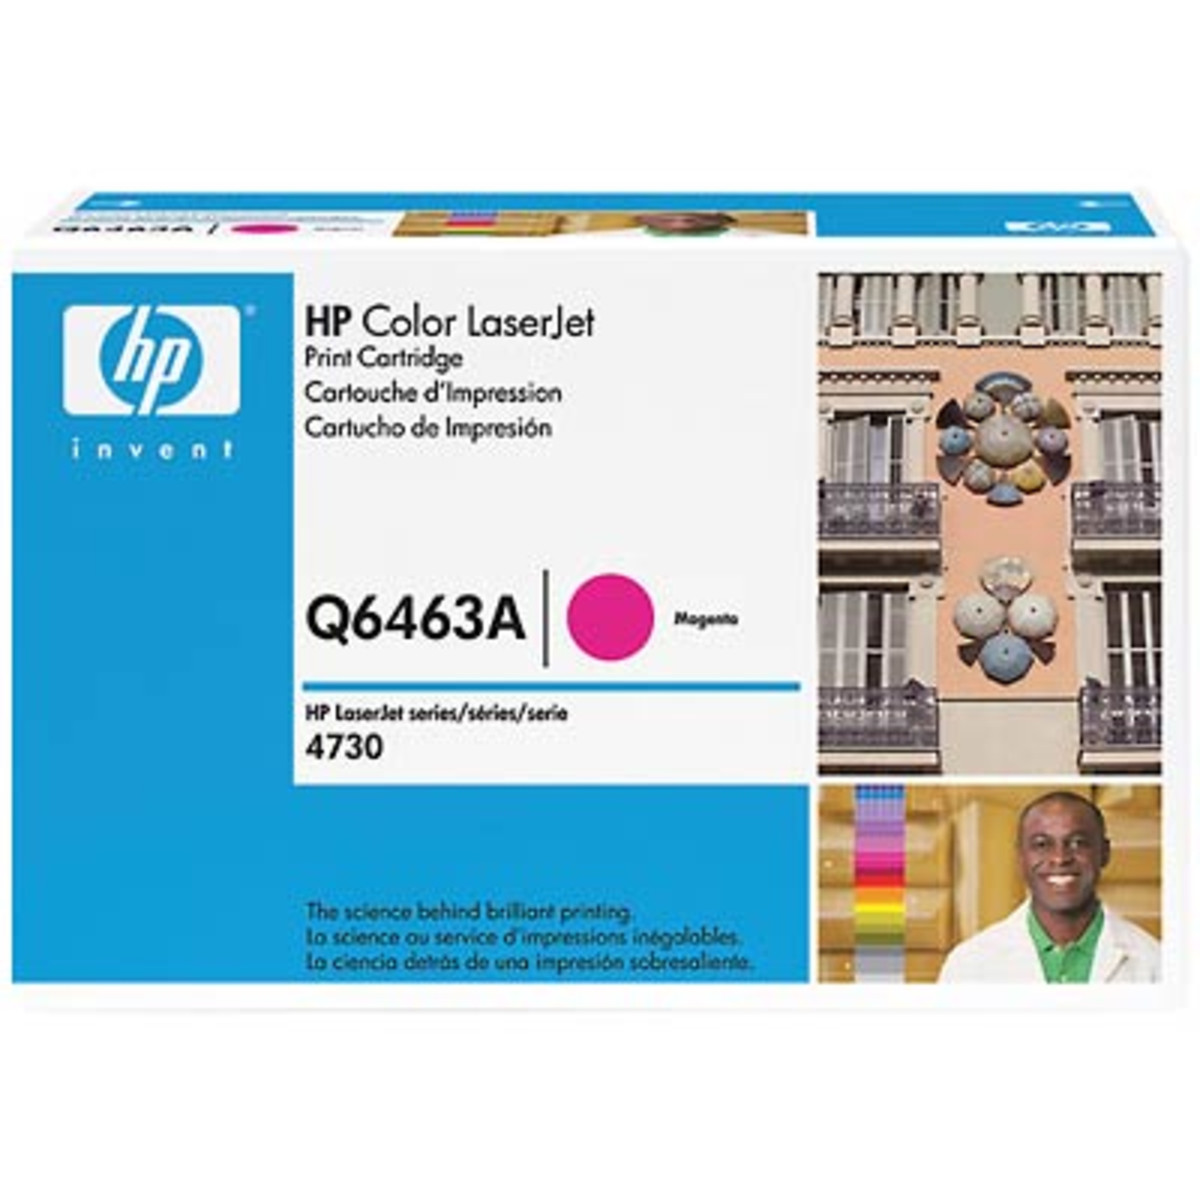 HP 644A (Q6463A) Magenta Toner Cartridge